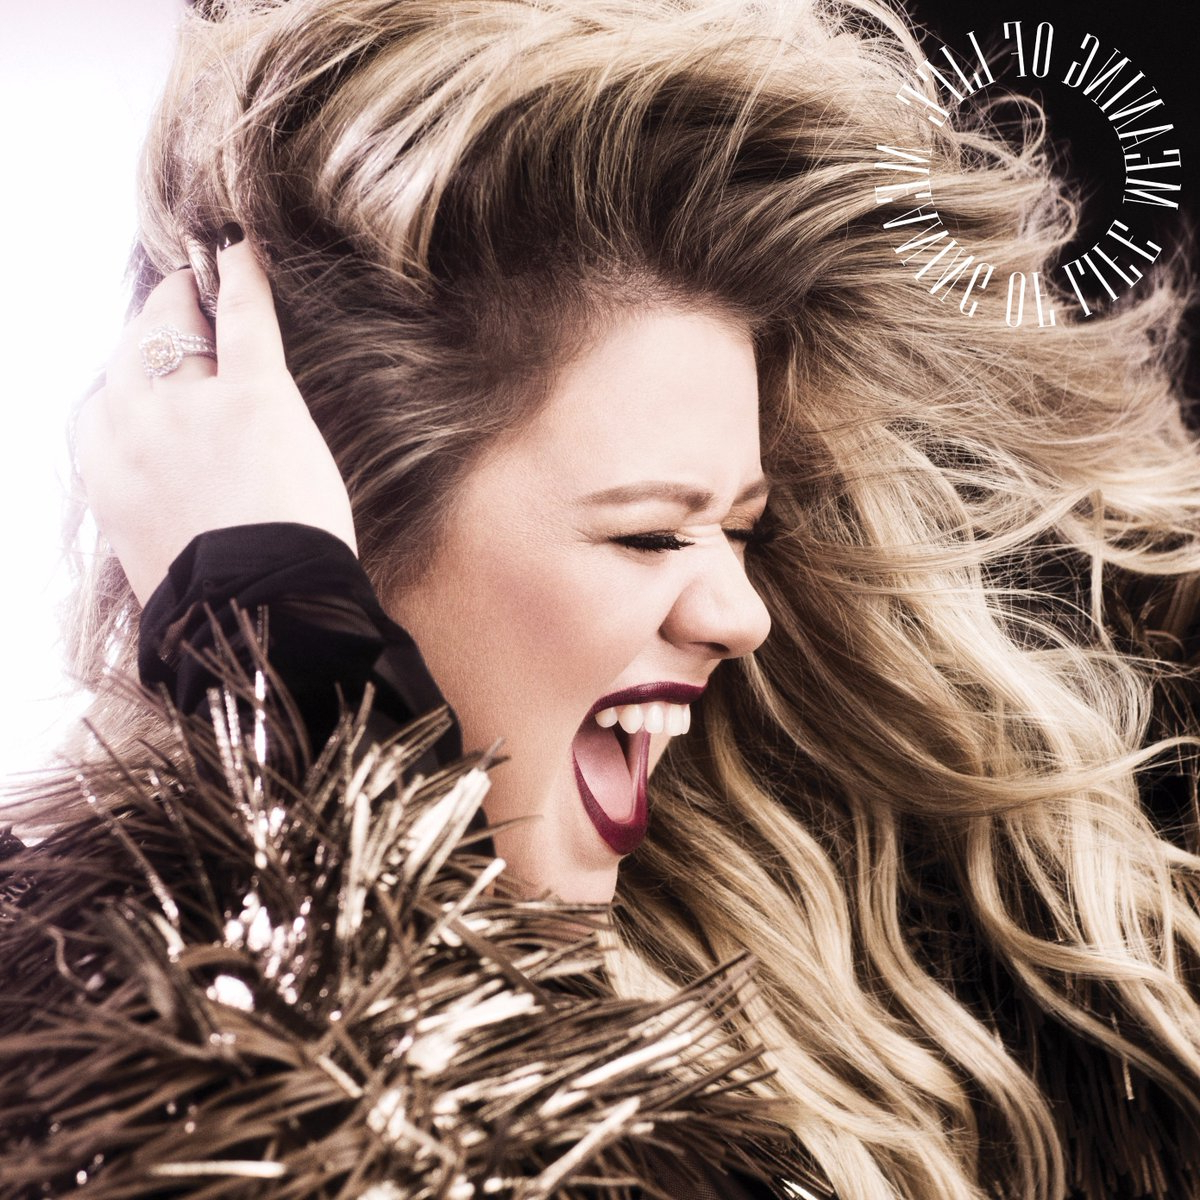 Kelly Clarkson (@kelly Clarkson) | Twitter Throughout Kelly Clarkson Short Hairstyles (View 24 of 25)